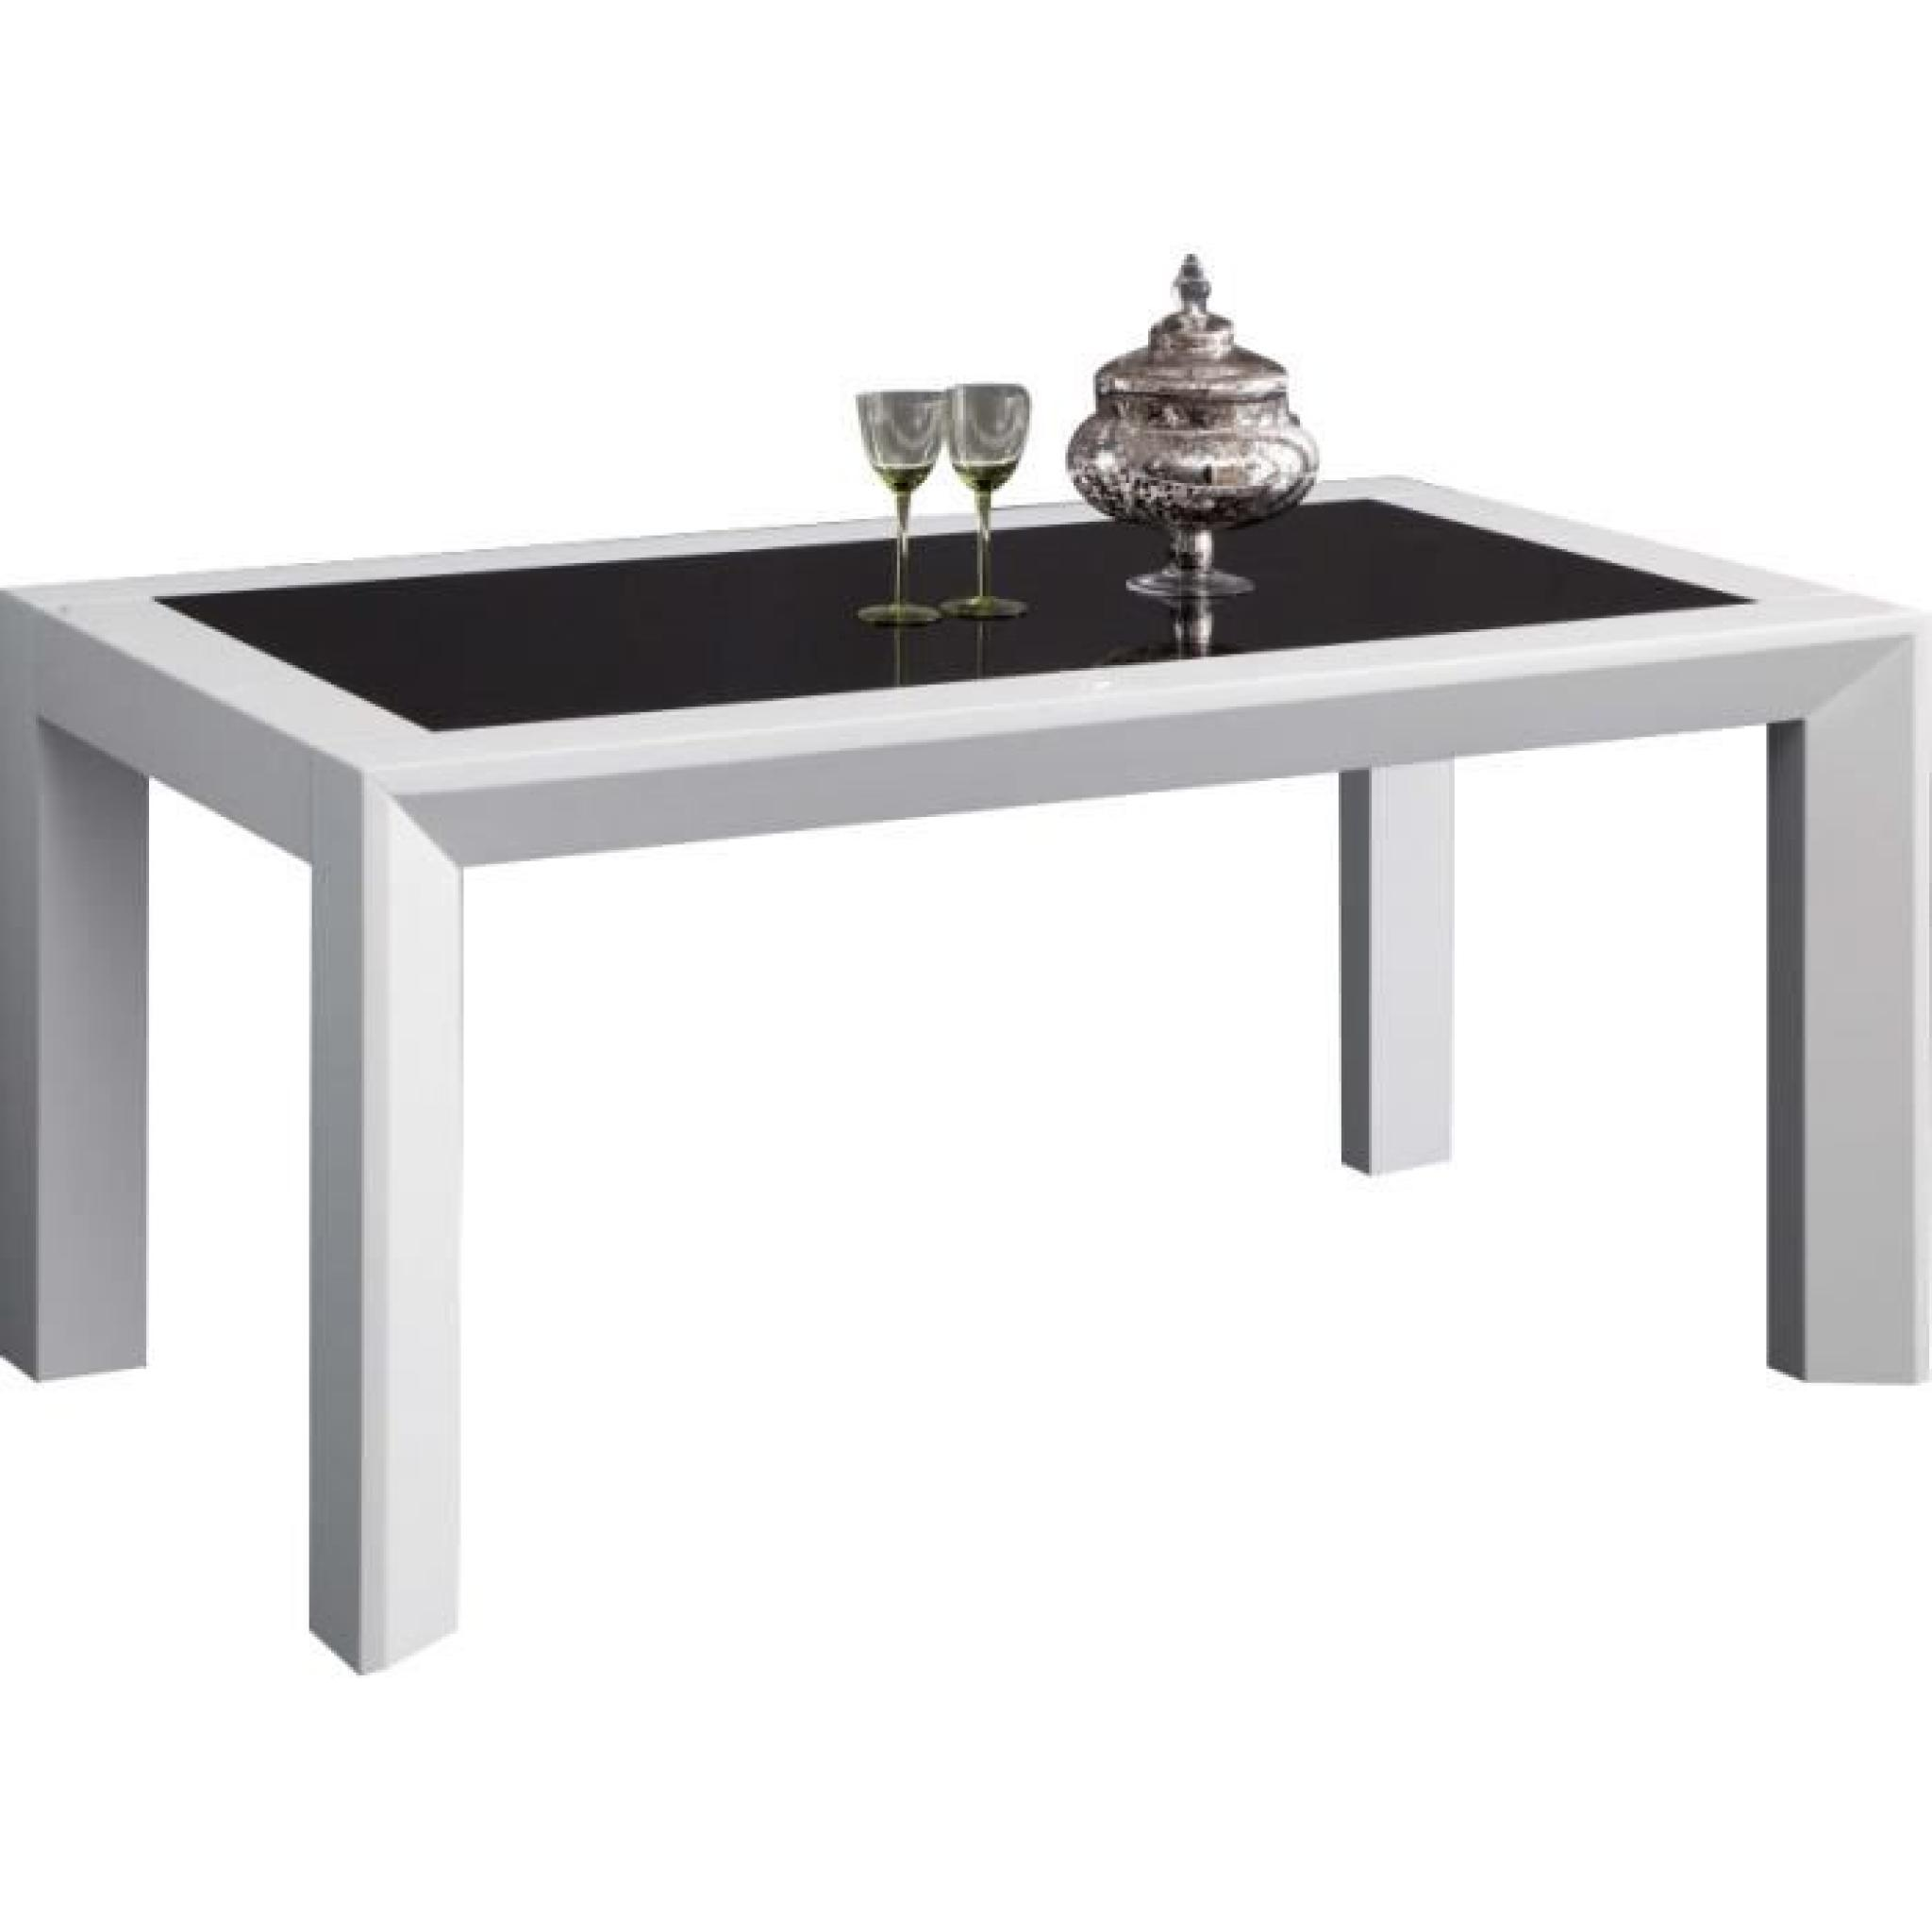 table a manger noir et blanc 28 images table a manger design noir et blanc avec rallonge. Black Bedroom Furniture Sets. Home Design Ideas